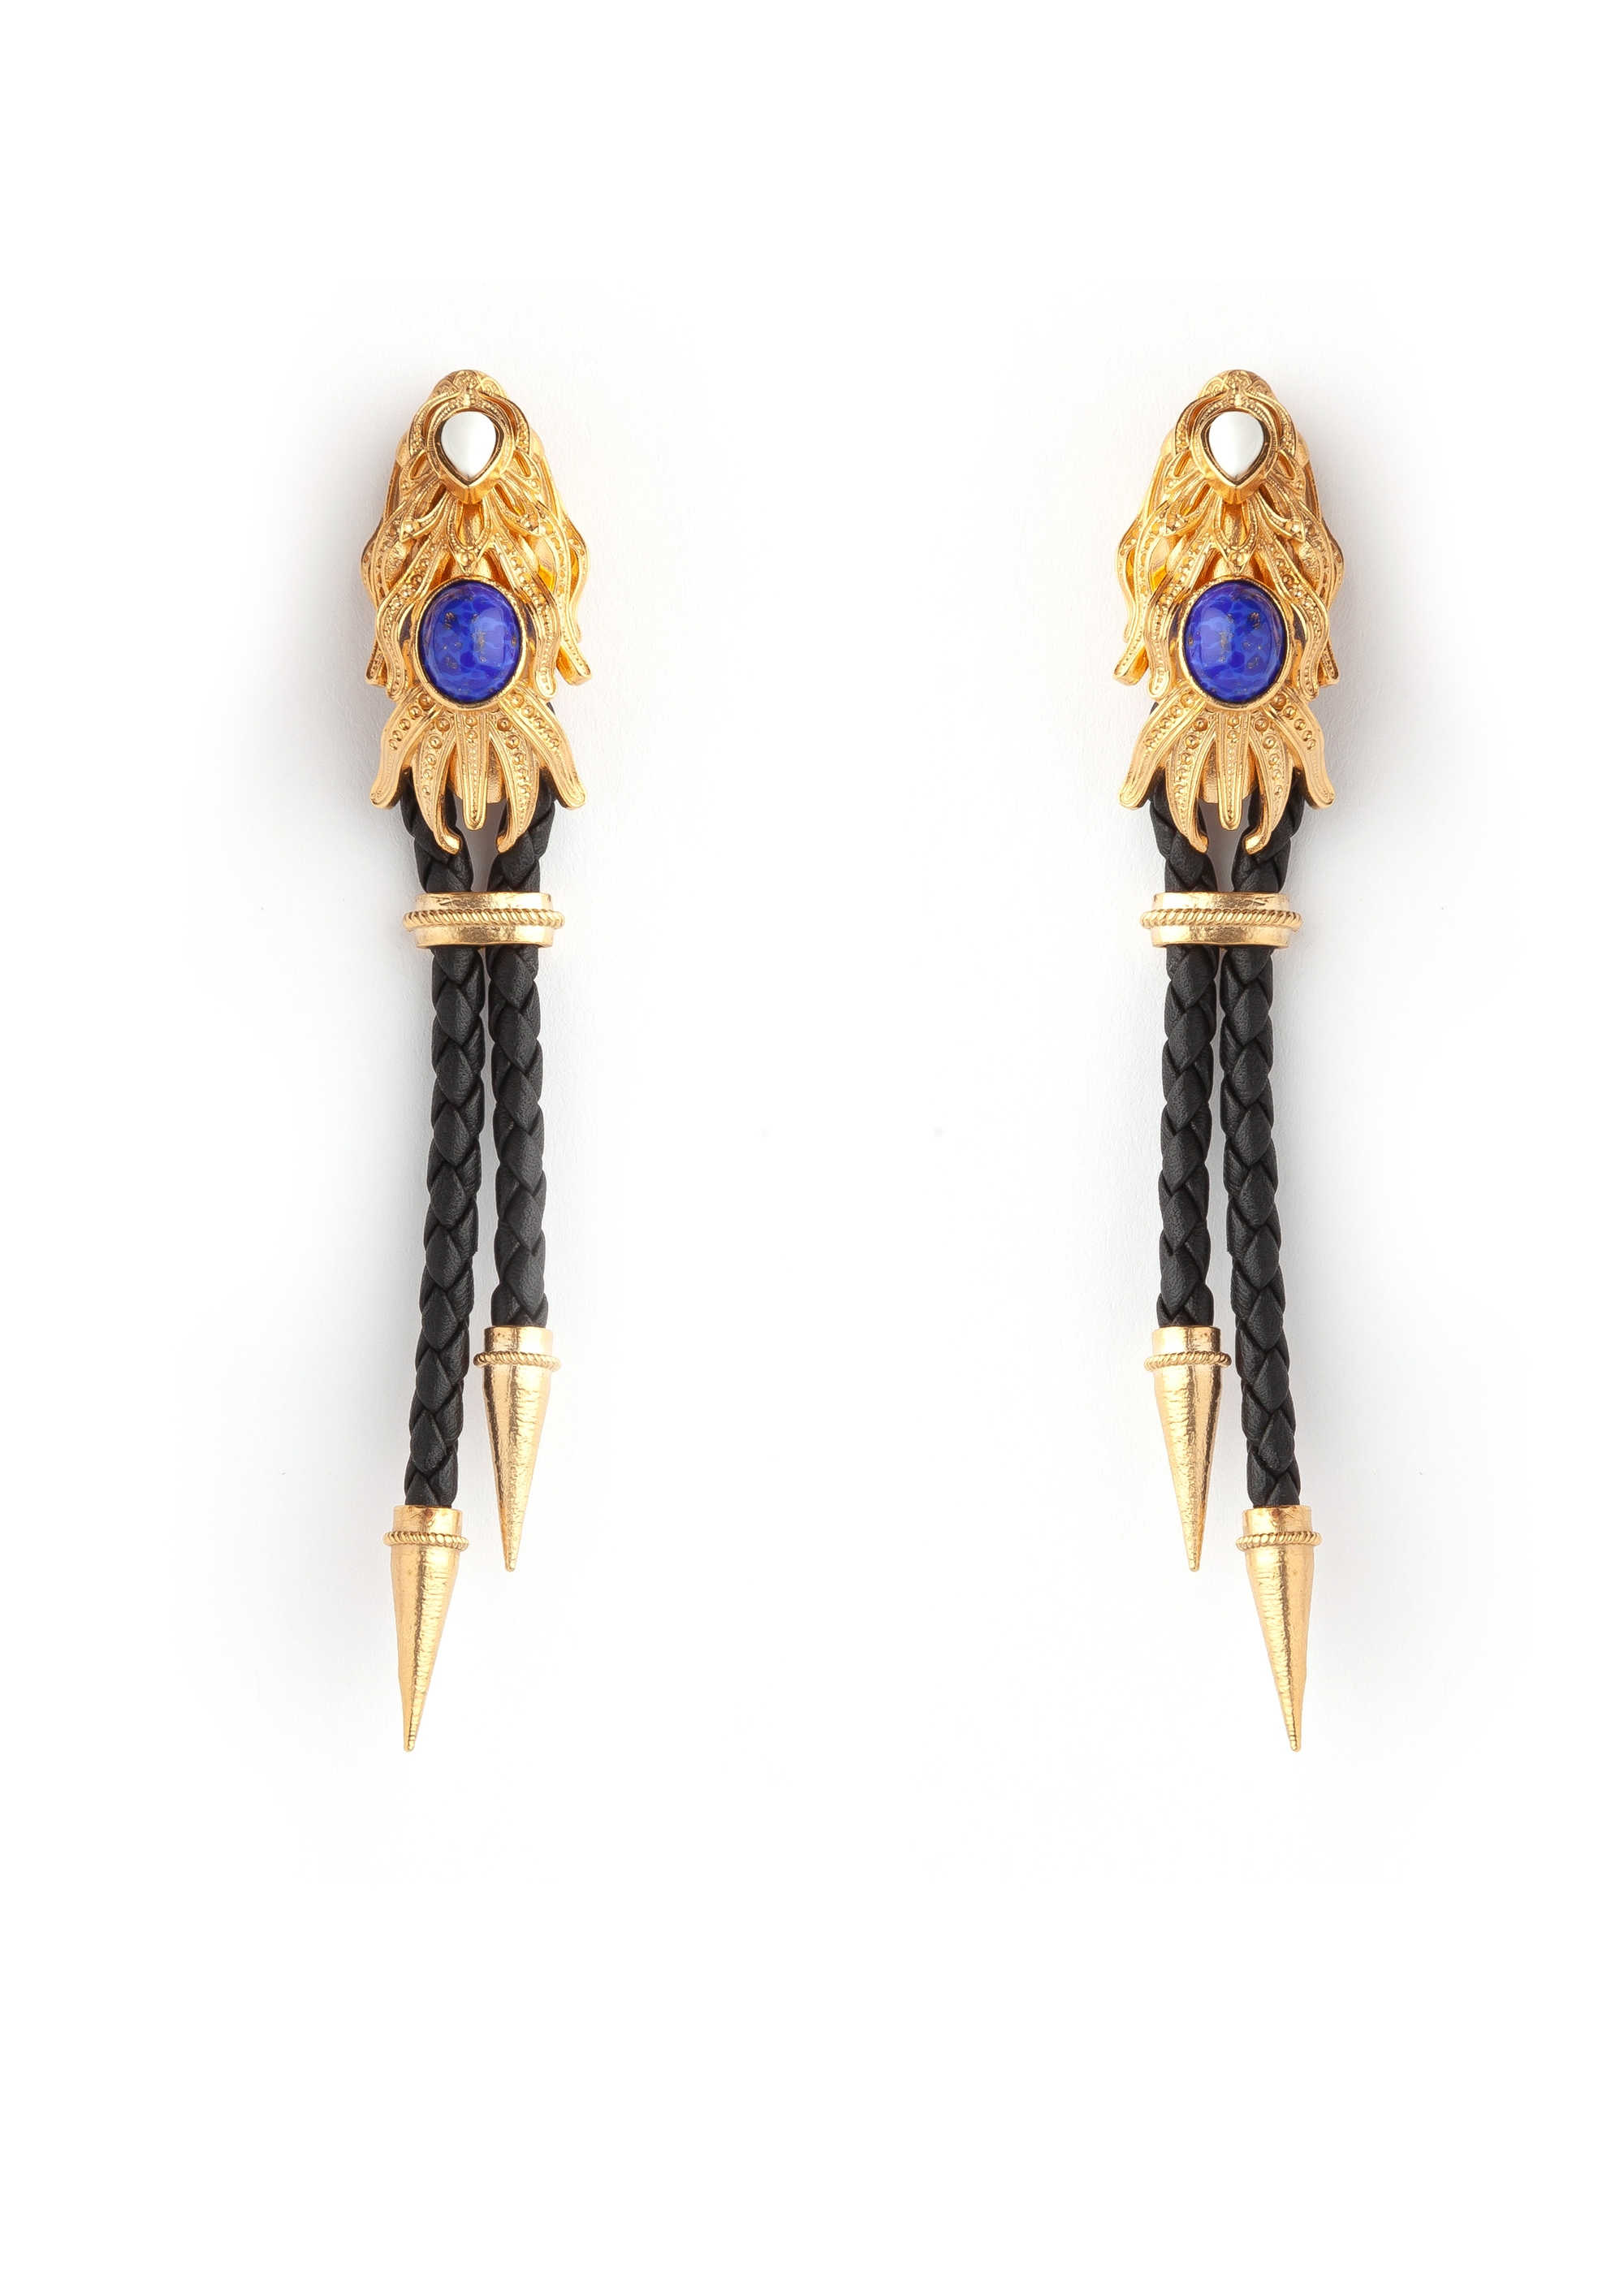 Black Gold Dragonfish Luxury Earrings by Sonia Petroff on curated-crowd.com